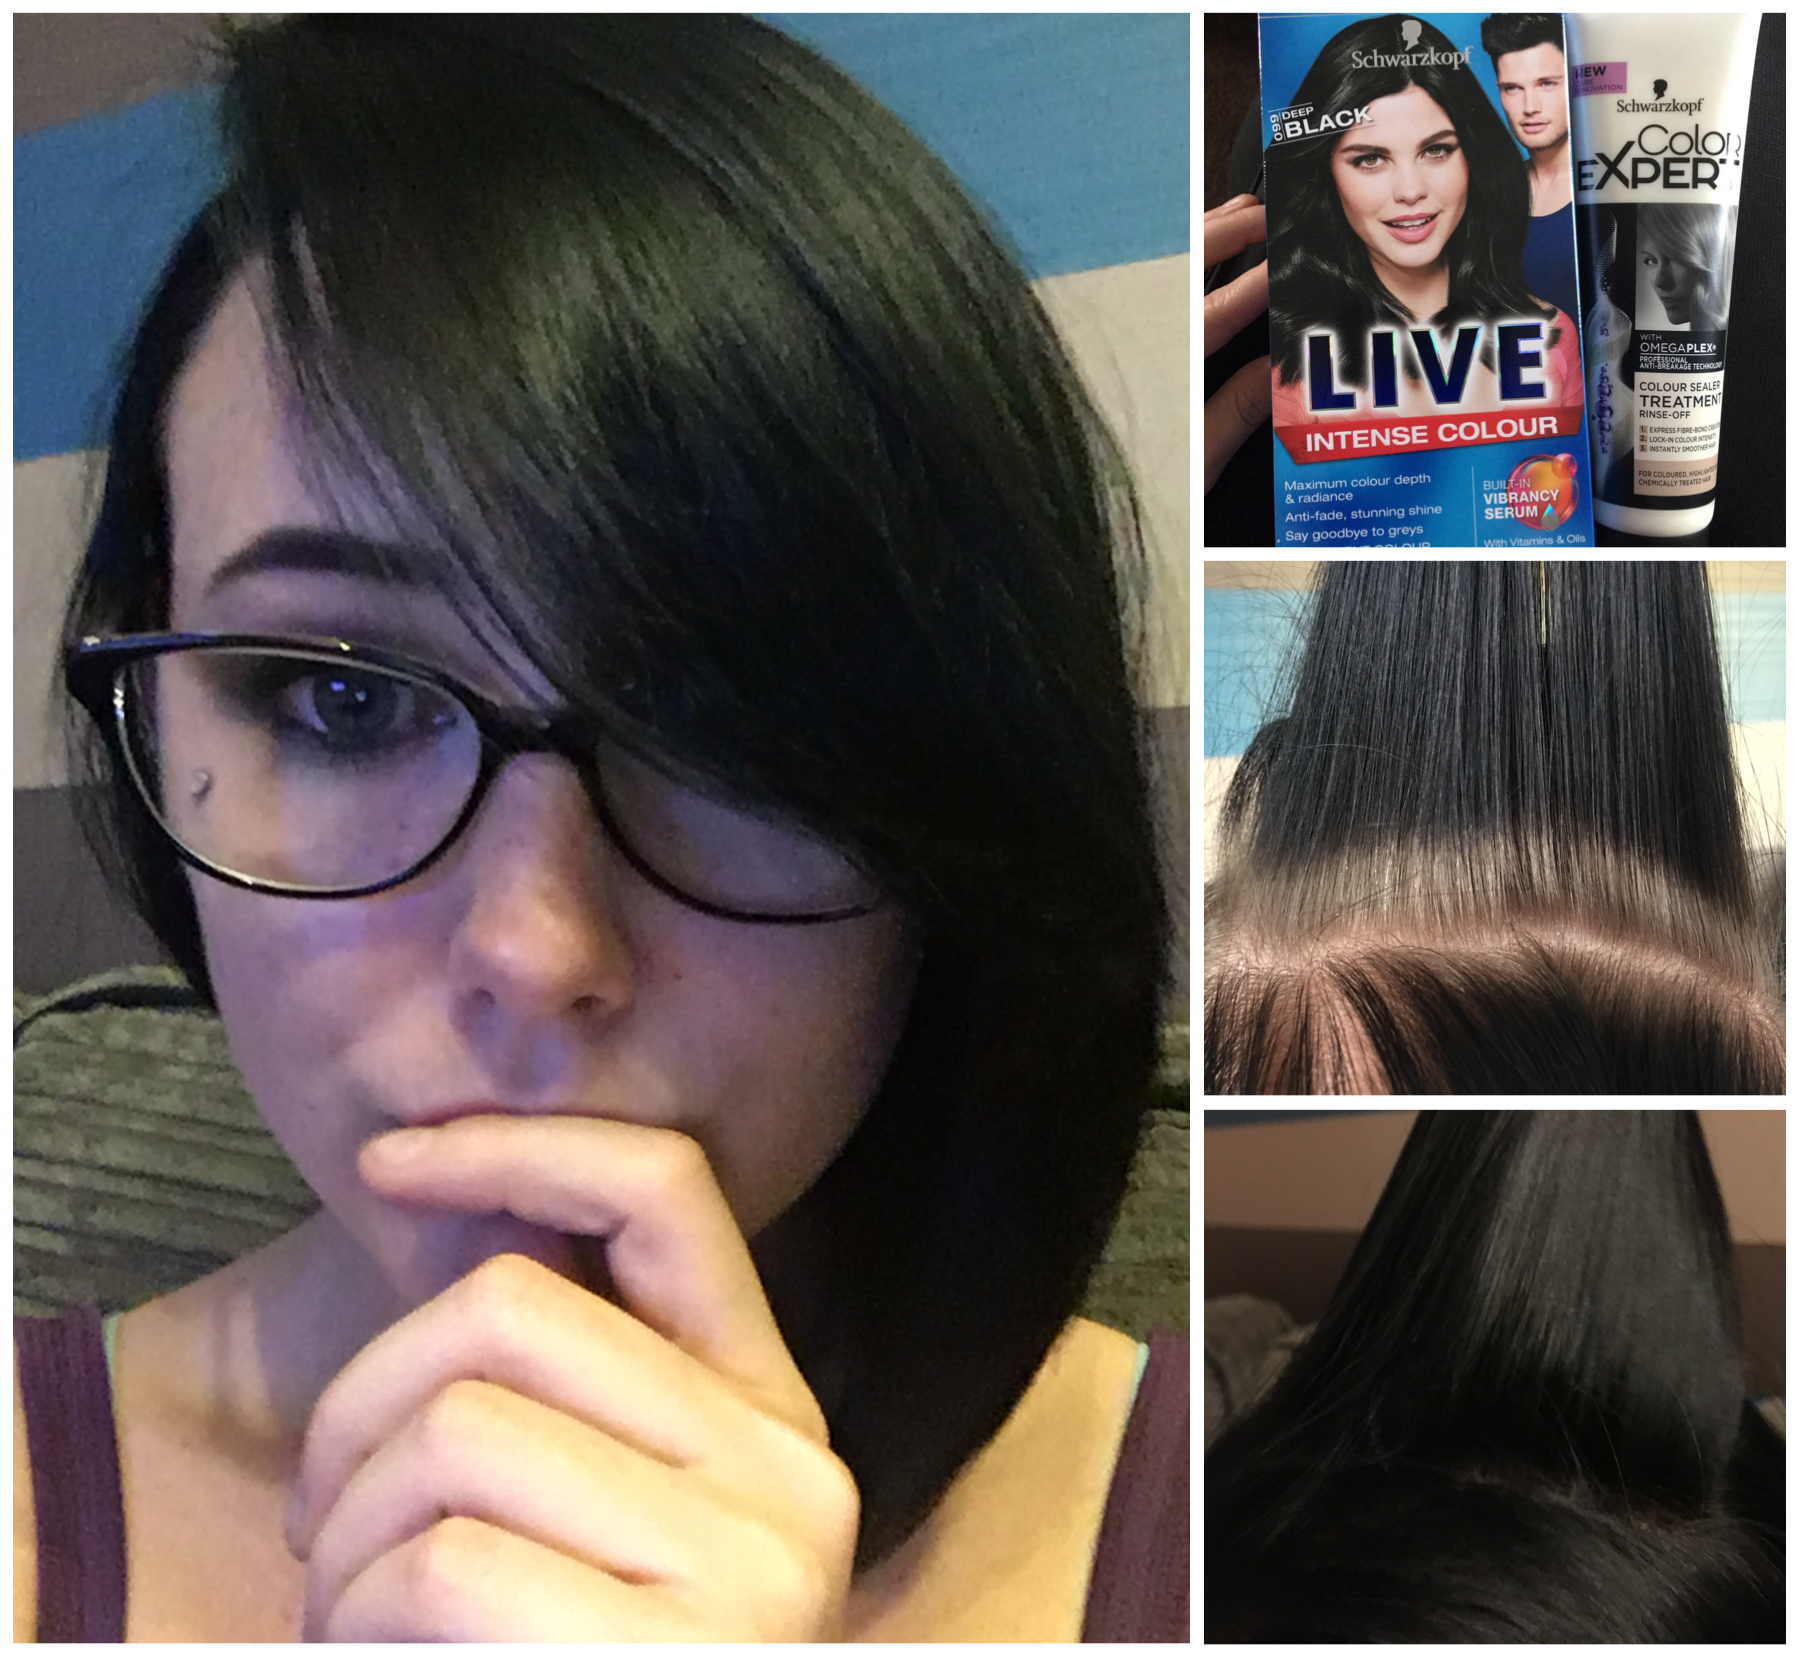 Schwarzkopf Live Colour in 099 deep black before and after. Good complete, even coverage. The colour after treatment smells amazing Now to see how long it lasts Gallery